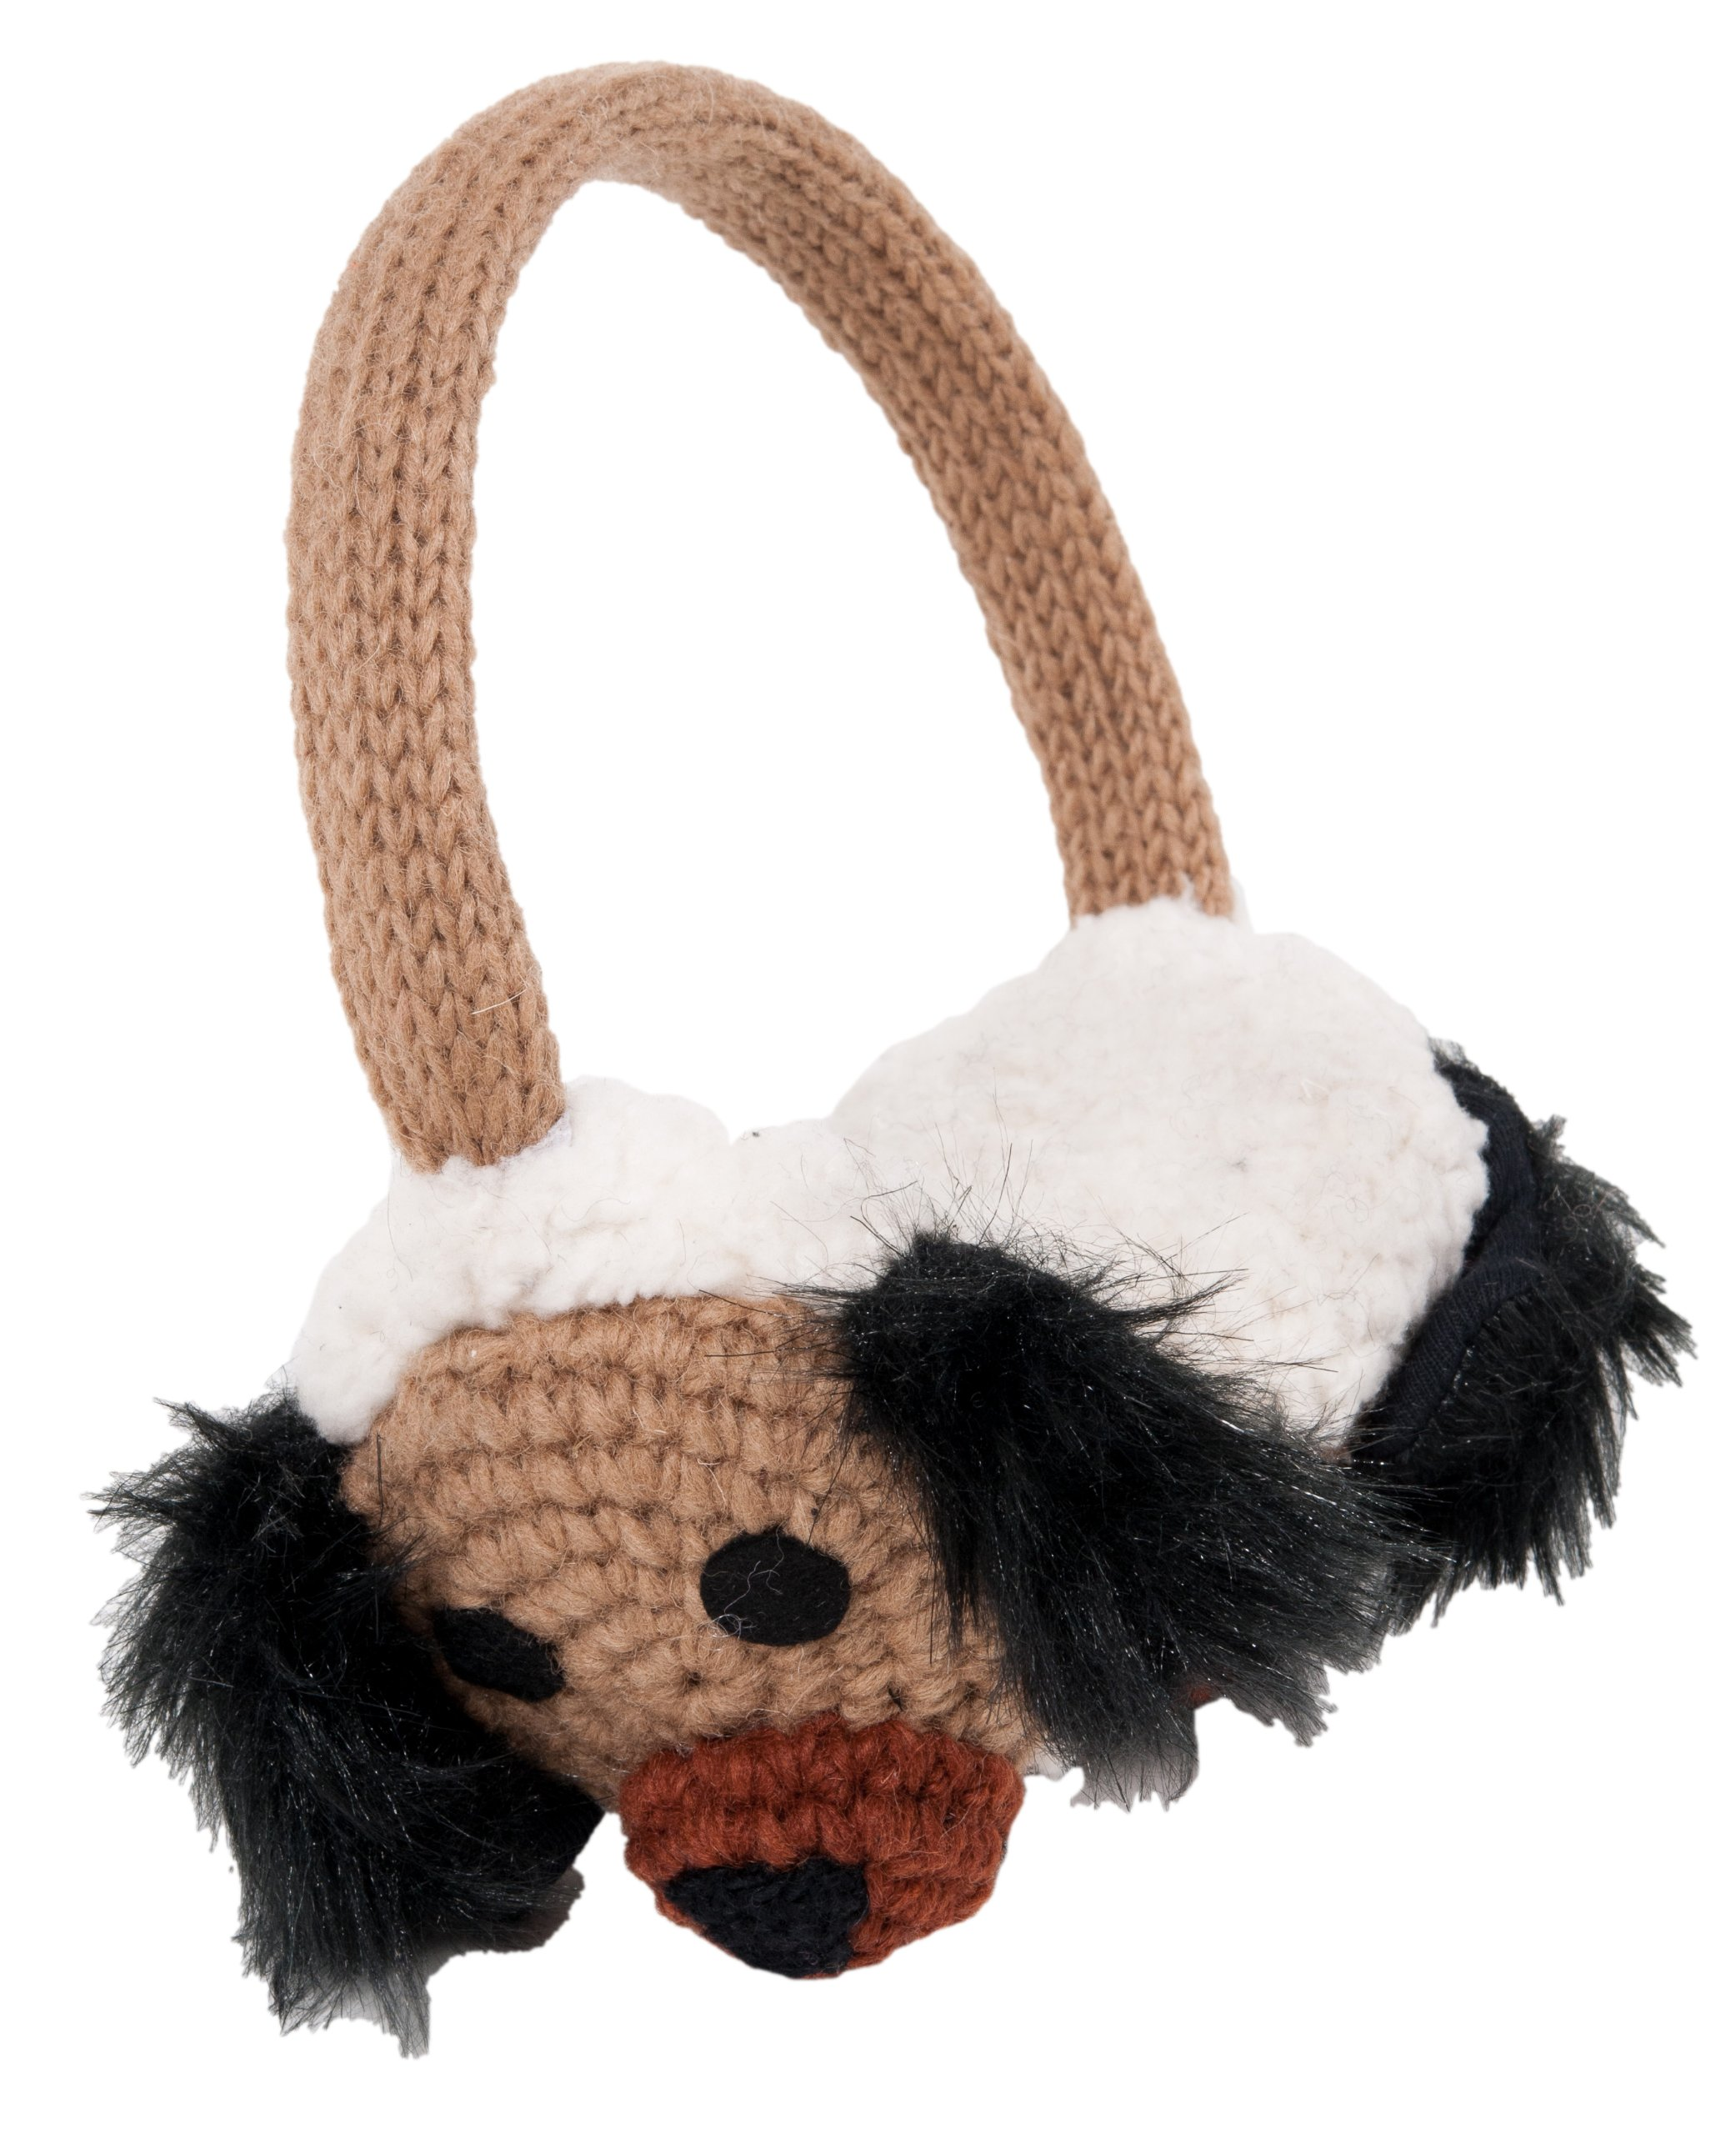 Nirvanna Designs EACRODOG Crochet Dog Earmuffs, Brown